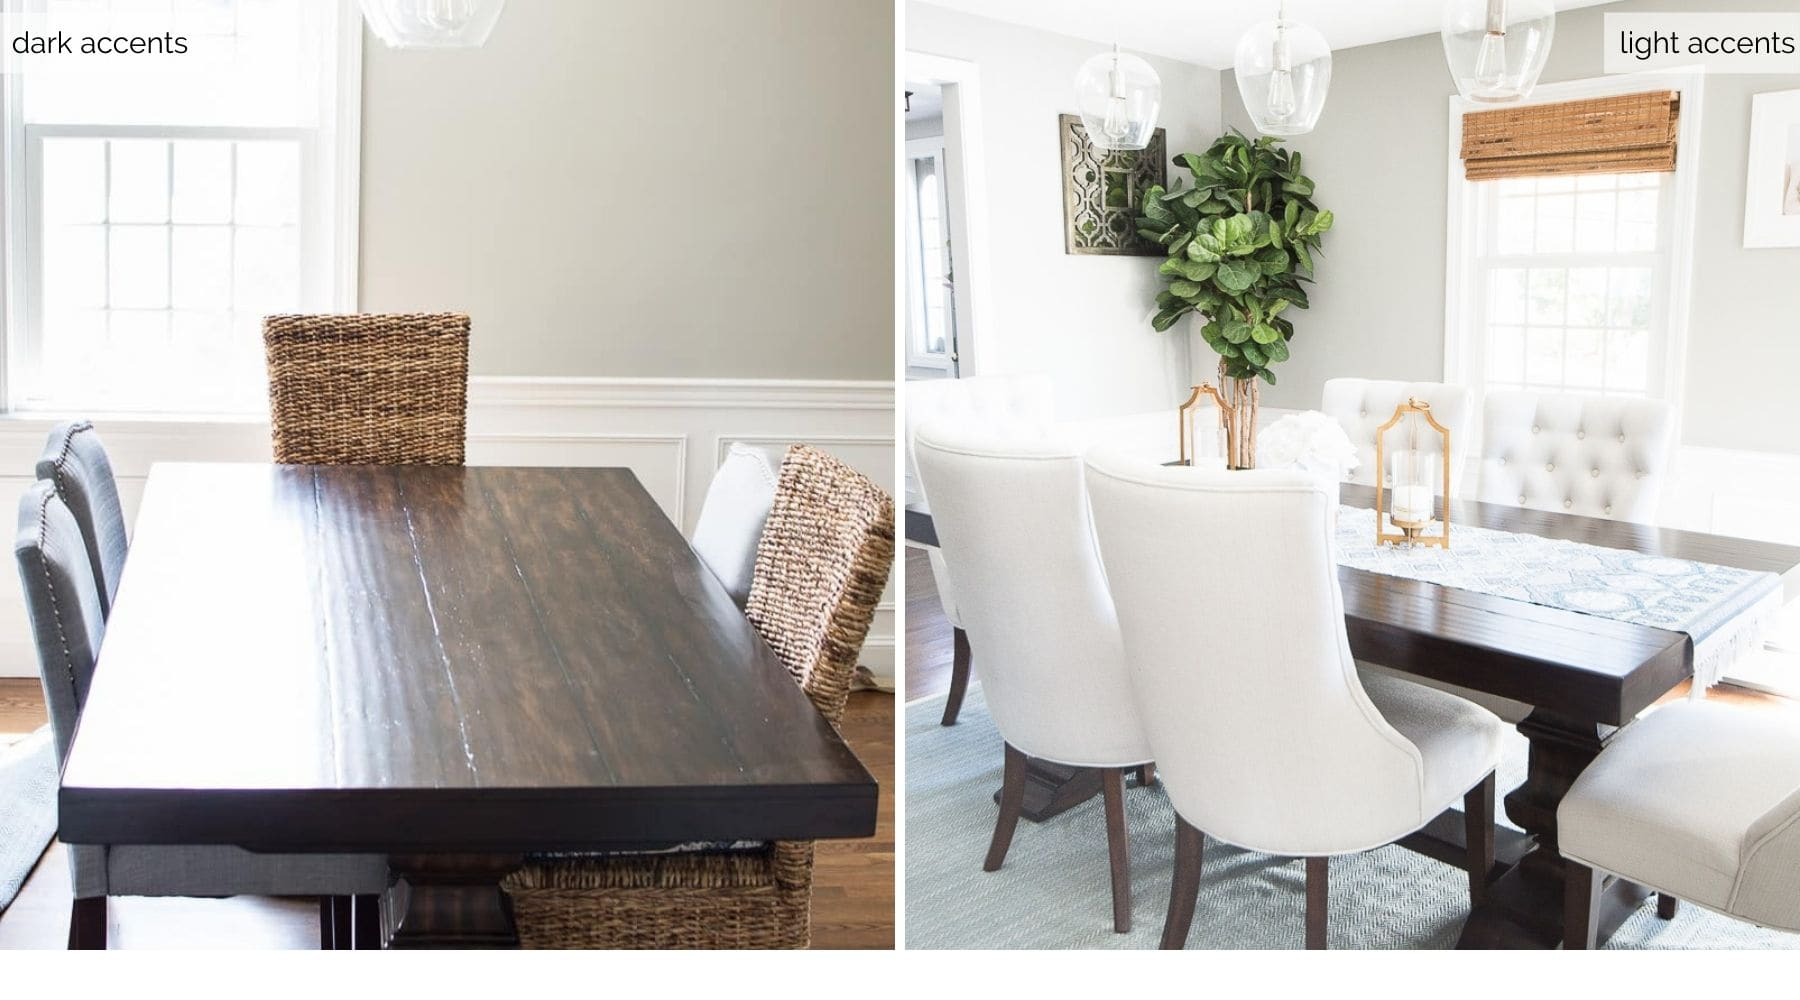 Two comparisons: dark wooden table and tall wicker chairs on the left; same wooden table but with white upholstered chairs and a large, light blue rug